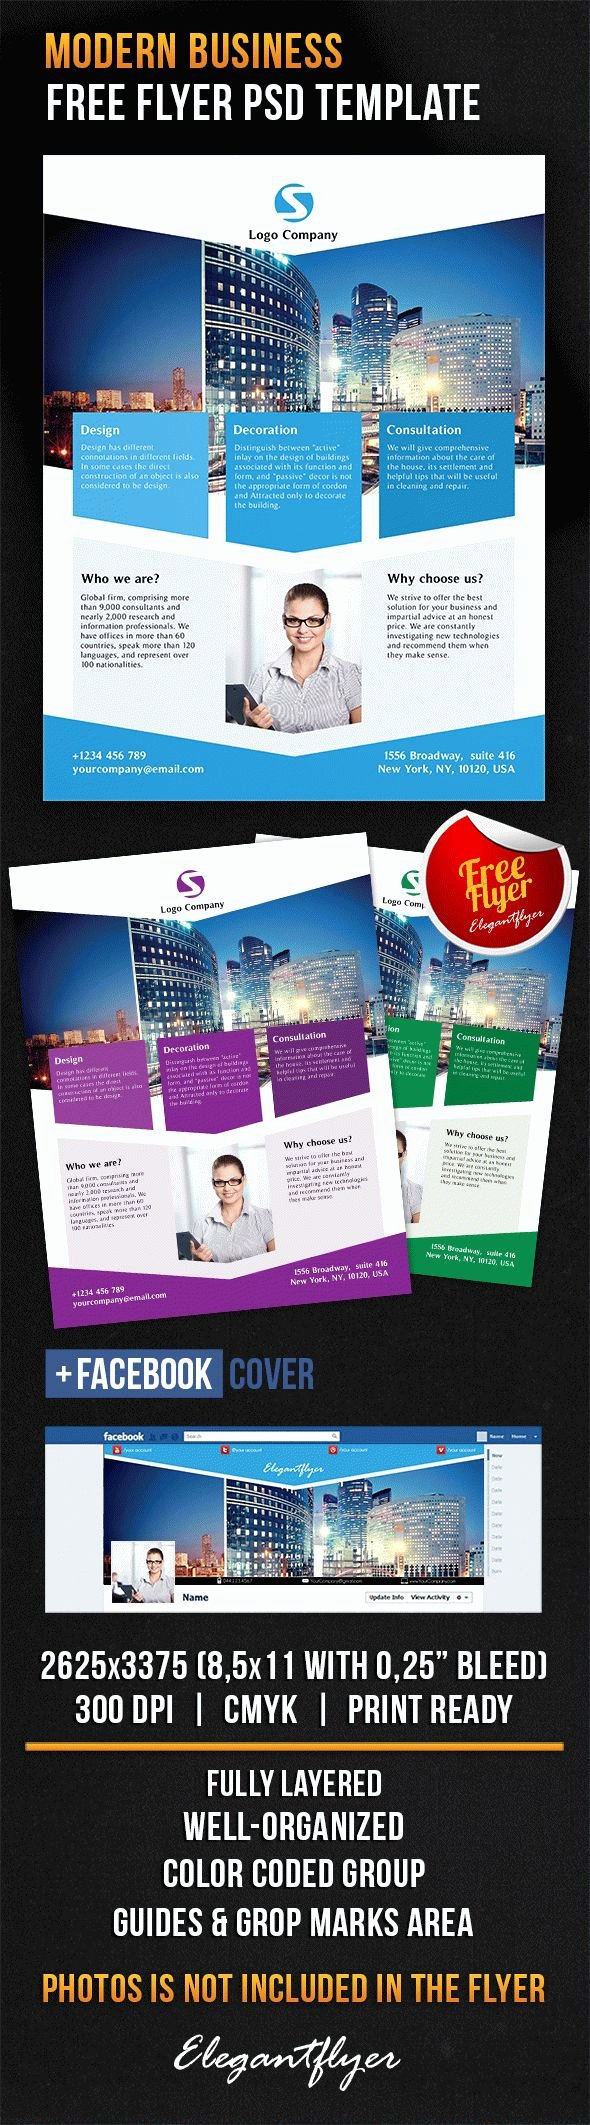 Facebook Ad Template Psd Lovely Download Modern Business Cover Psd Template